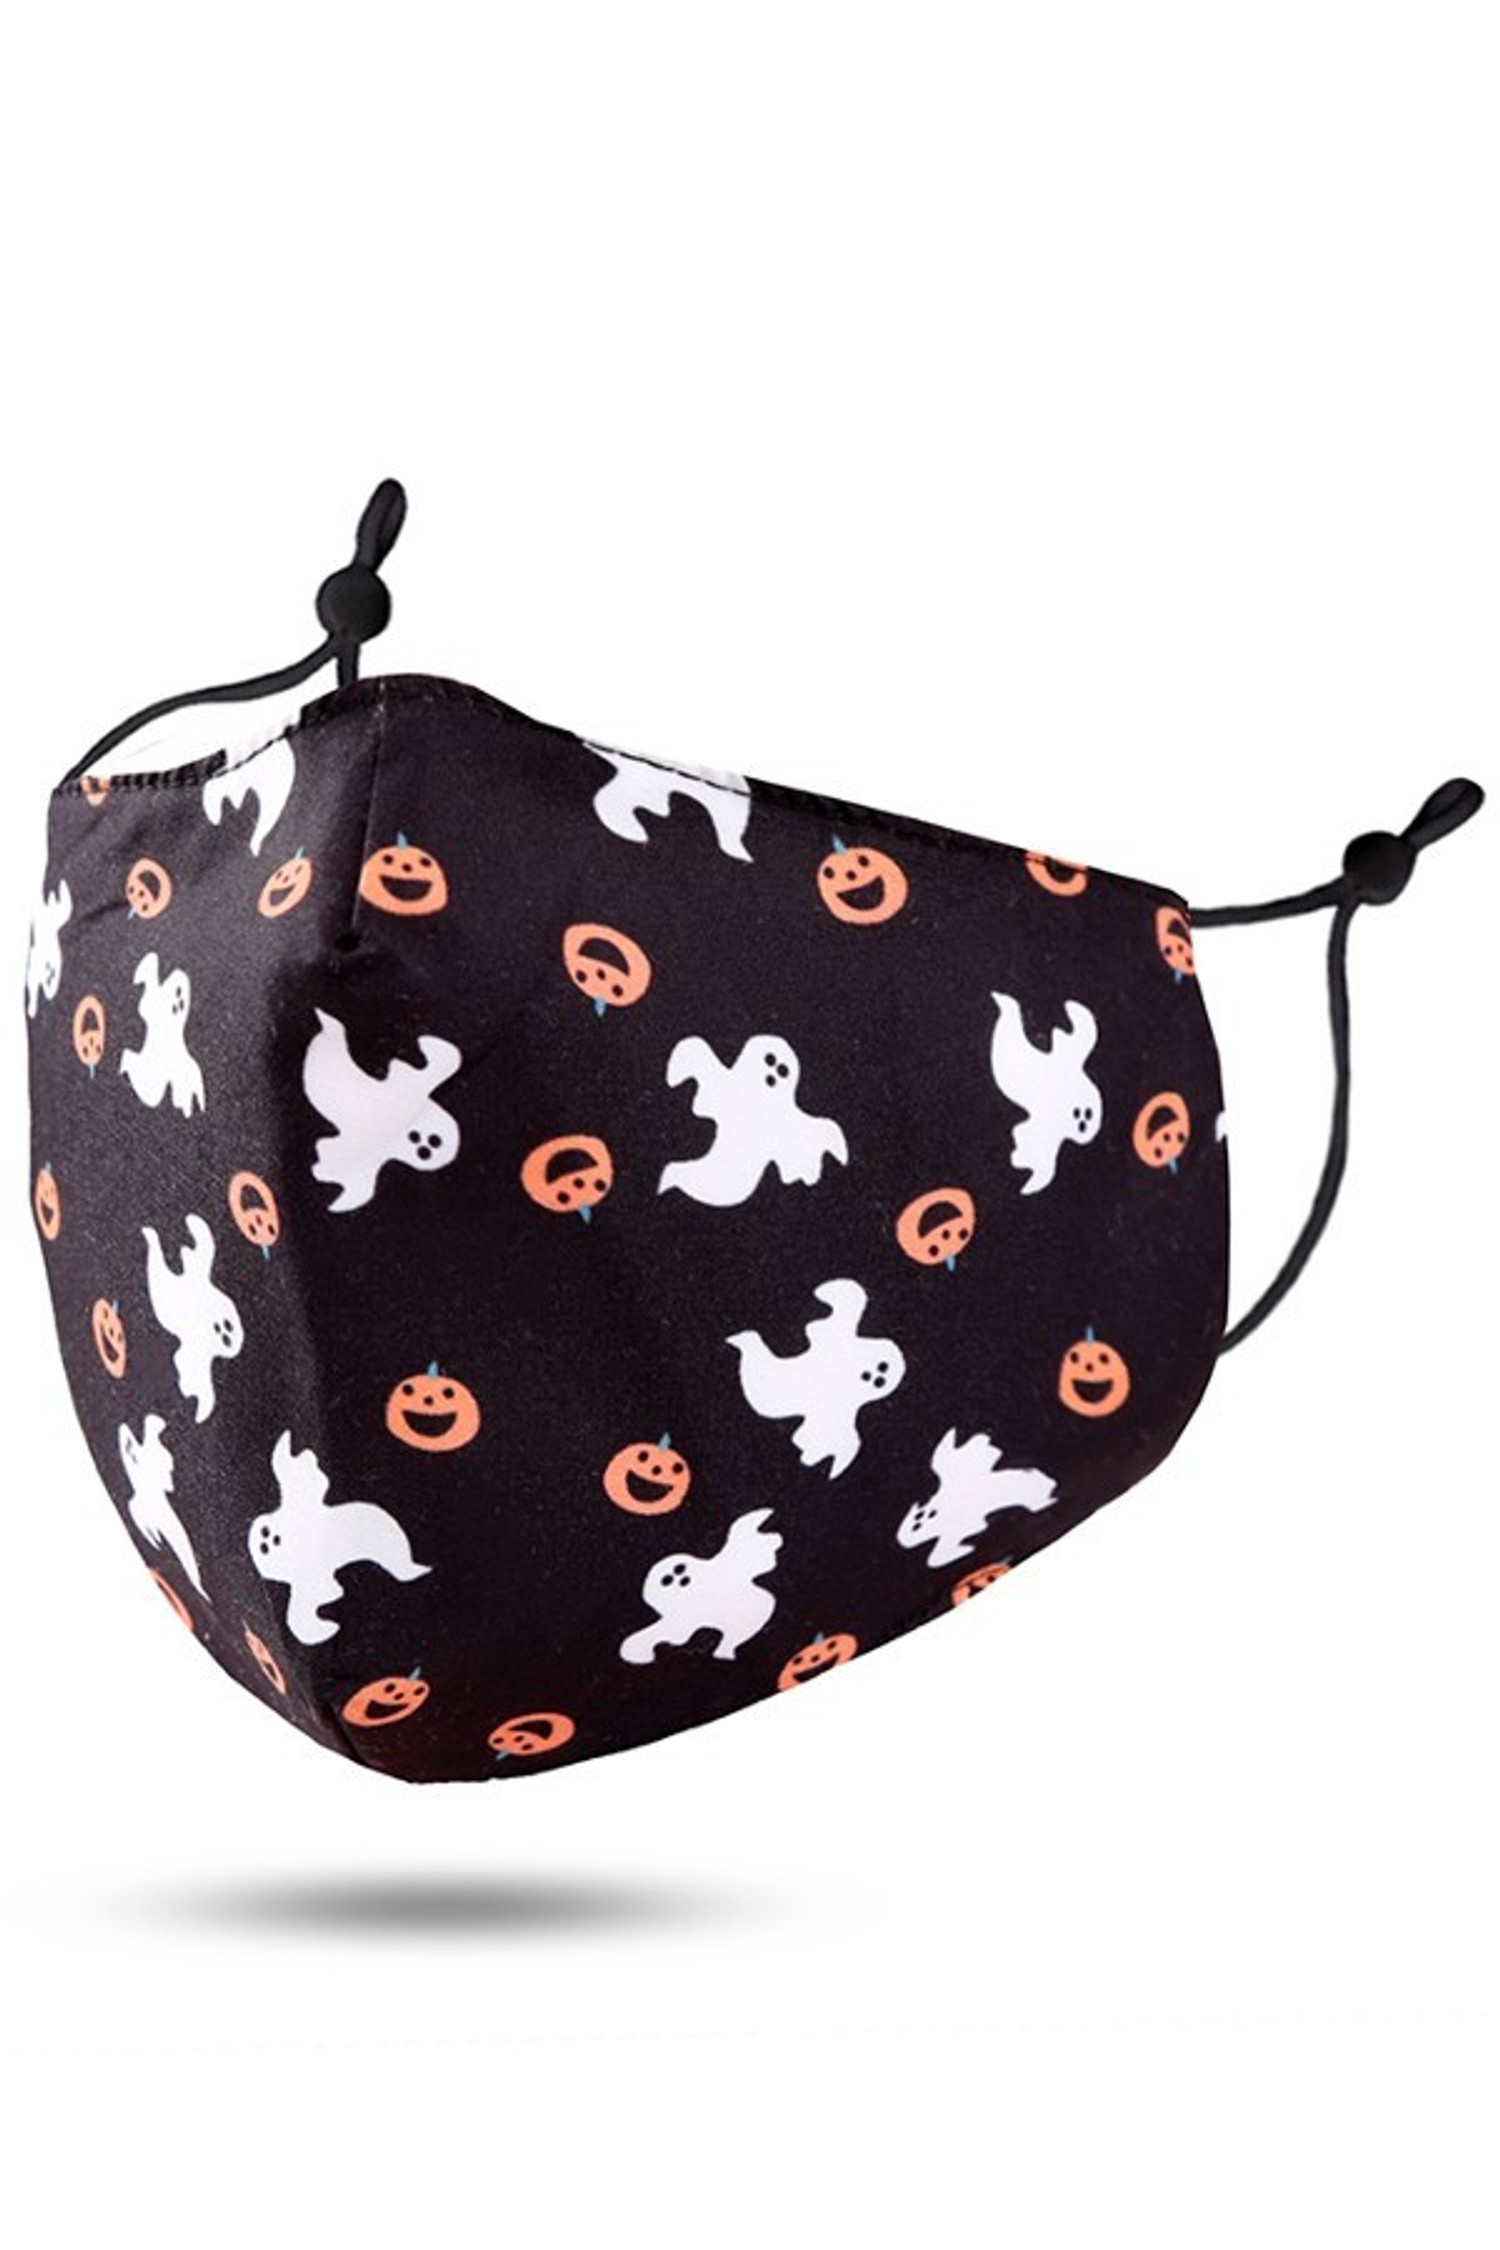 Ghosts and Pumpkins Halloween Face Mask